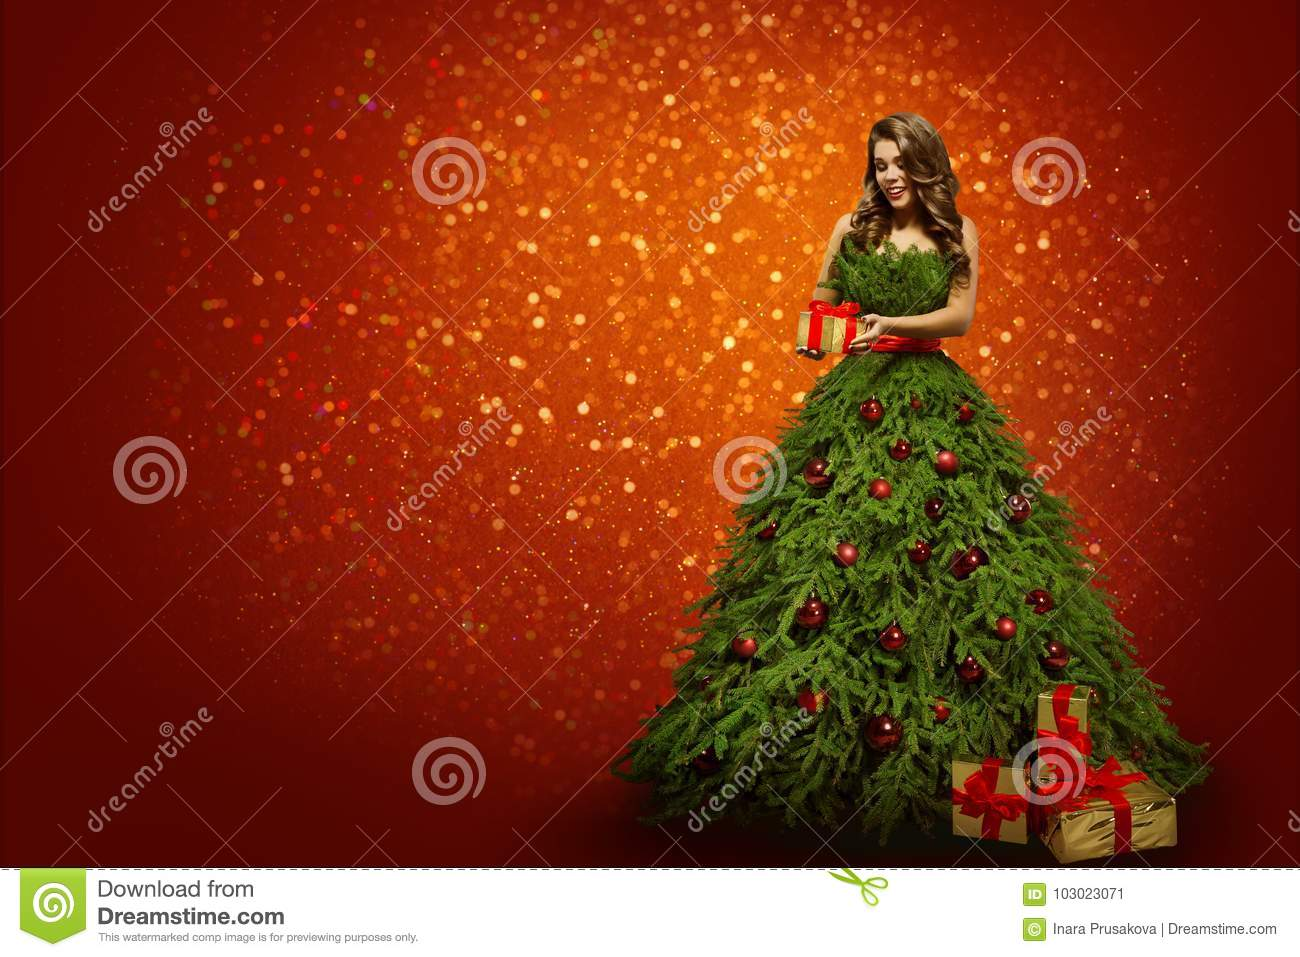 woman in christmas tree dress holding present gift fashion girl